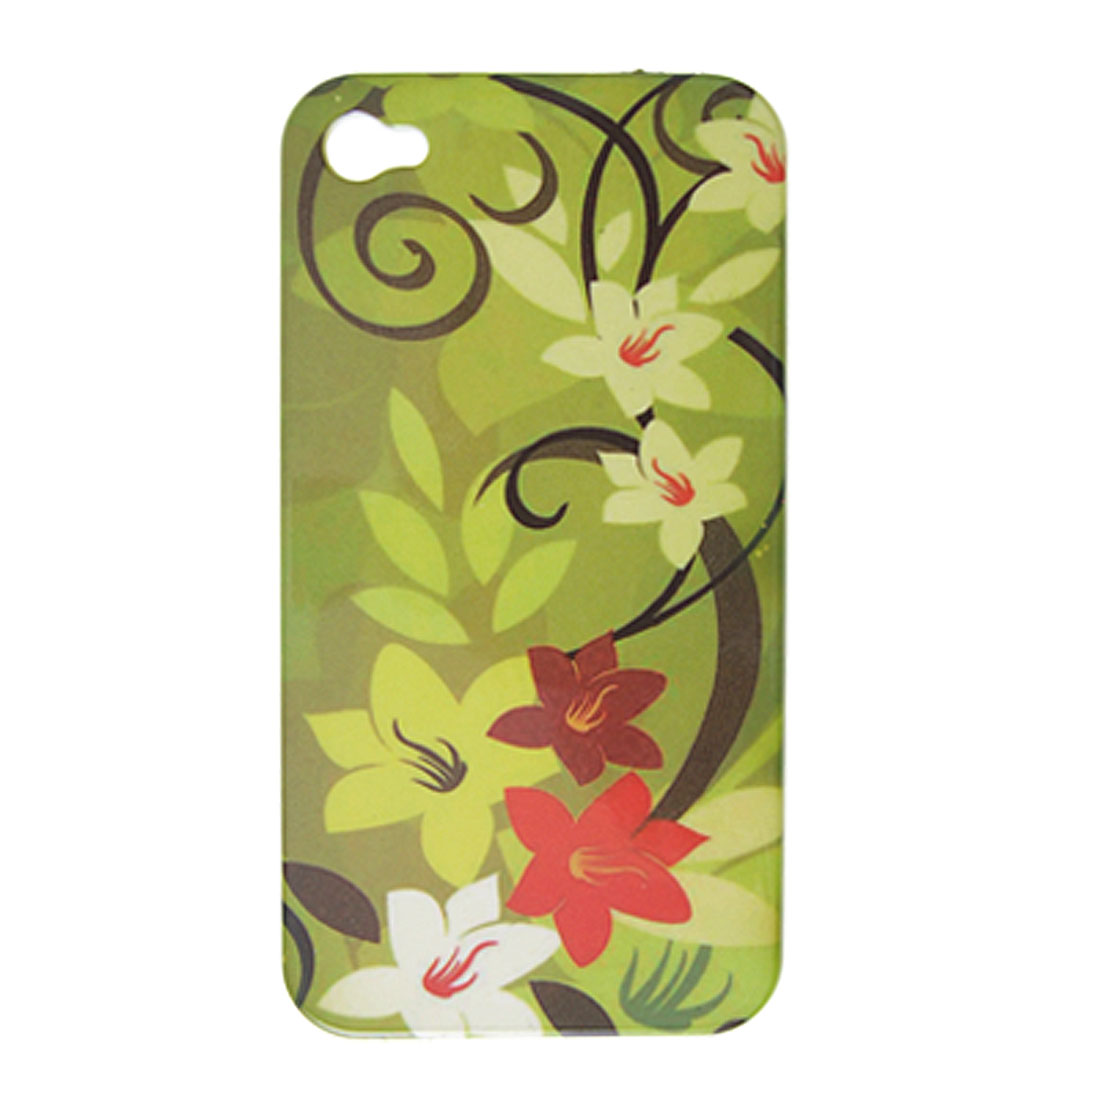 Flowery Hard Plastic Back Case Shell for Apple iPhone 4 4G